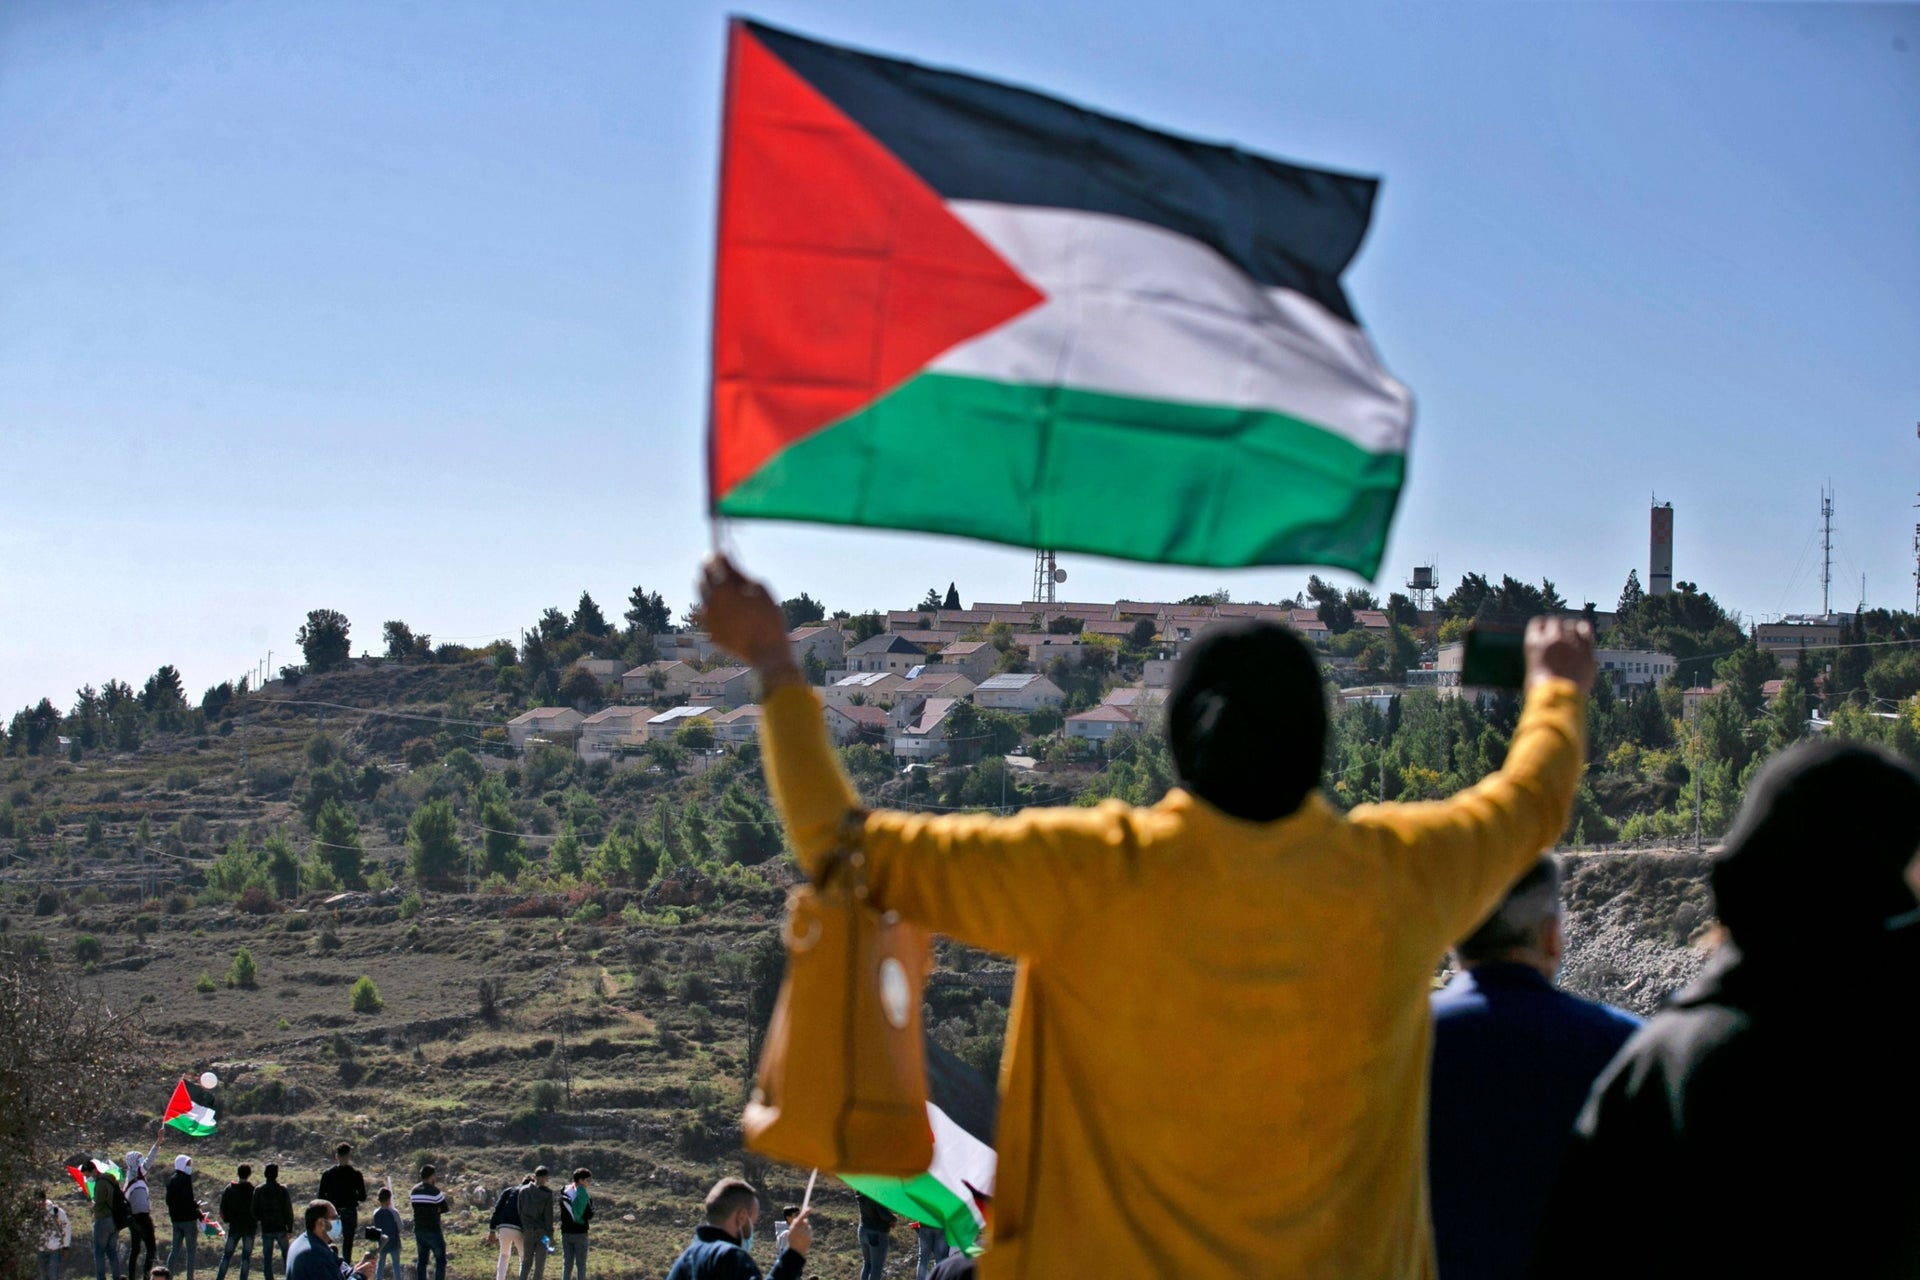 Palestinians protesting against expected visit of U.S. Secretary of State Mike Pompeo to the Jewish settlement of Psagot near the West Bank city of Al-Bireh, November 18, 2020.